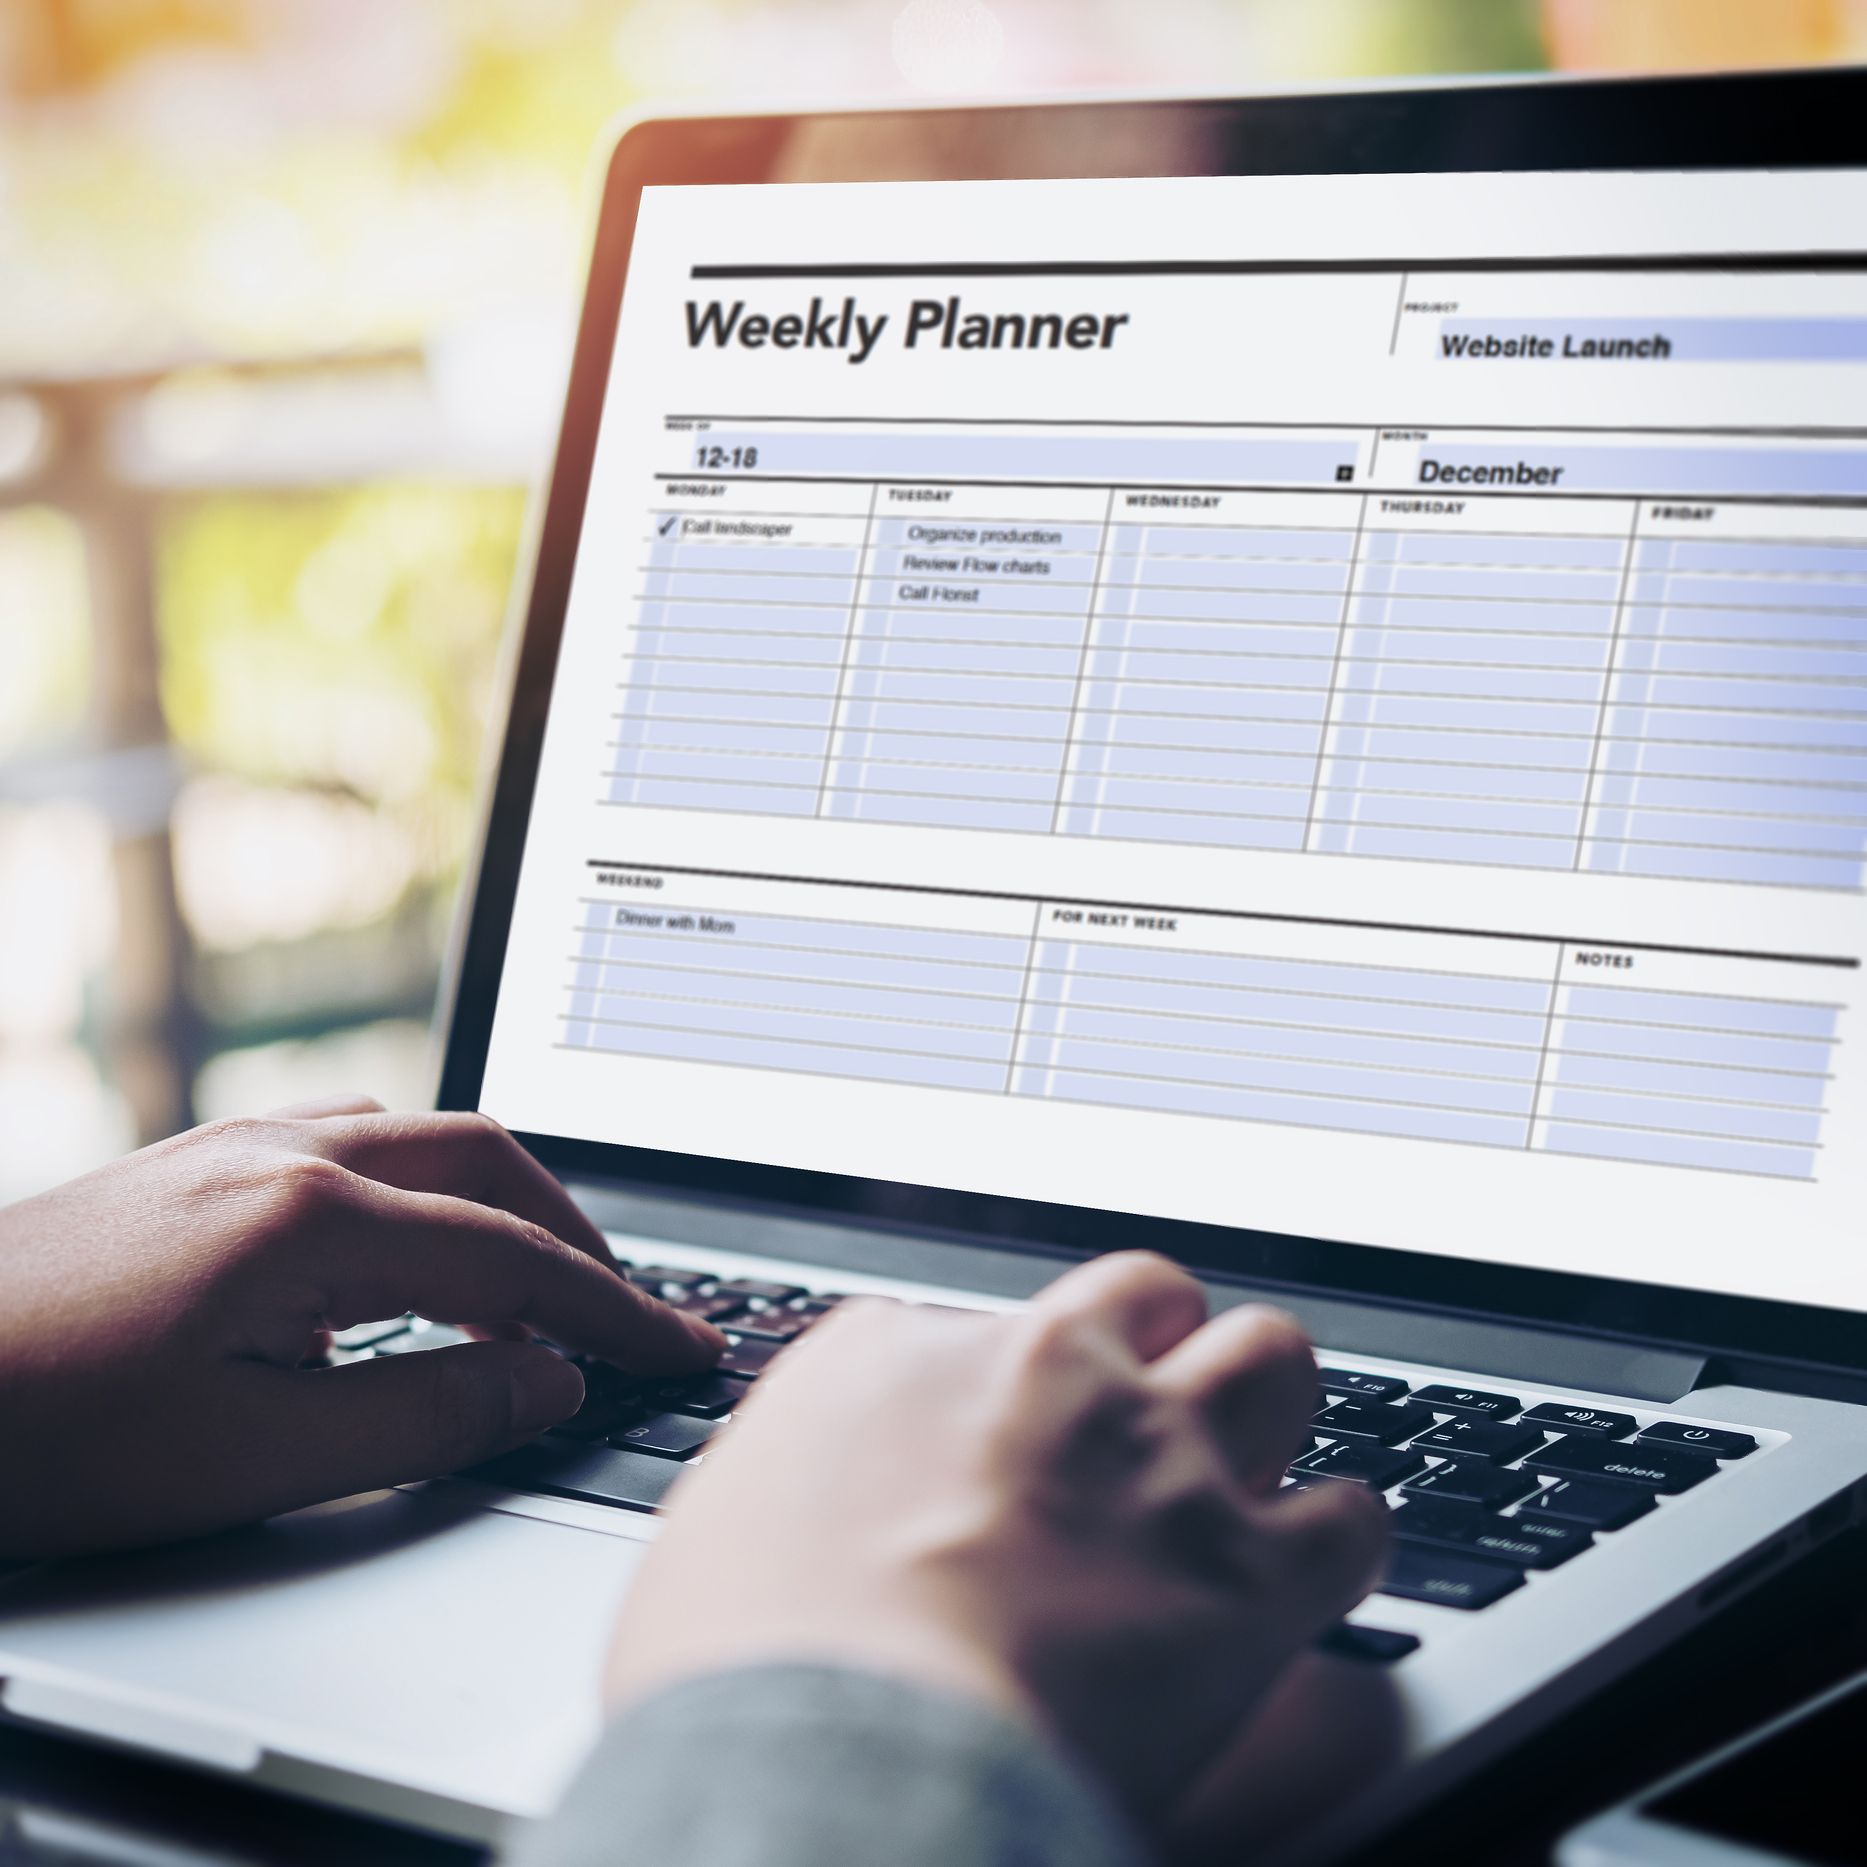 Fillable Weekly Planner Student Agenda